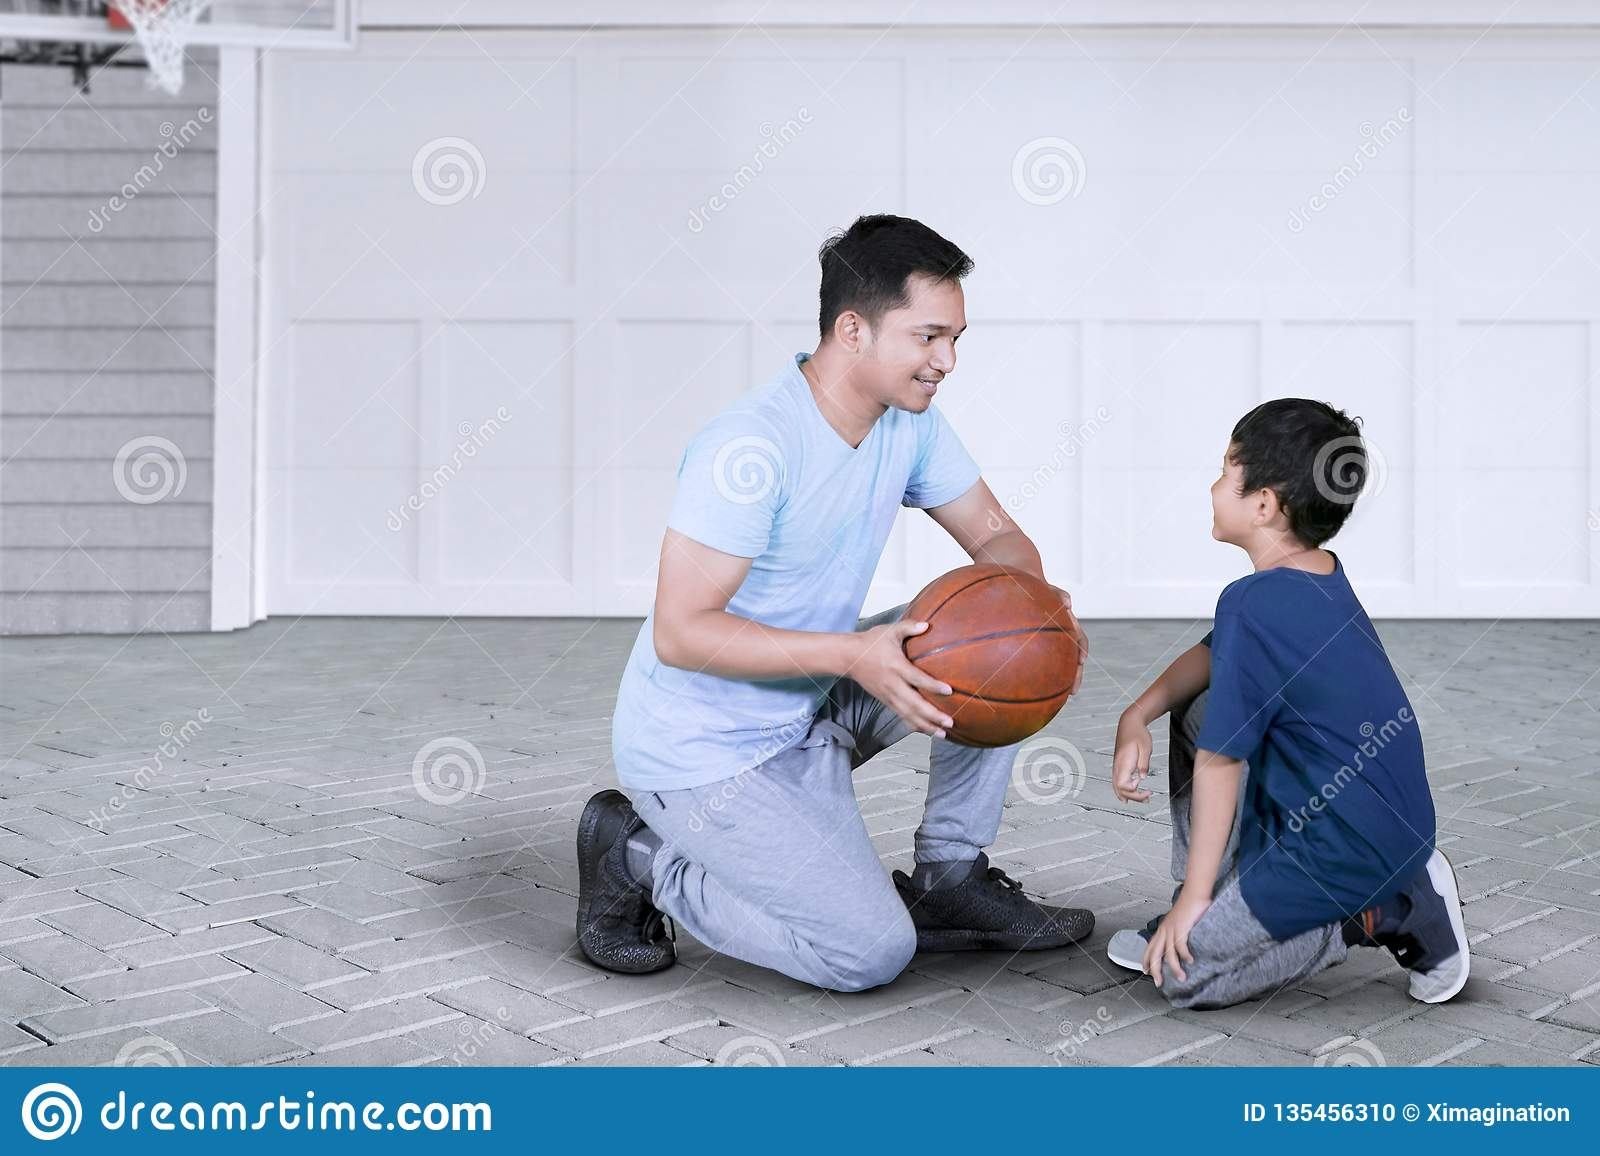 Father Teaching His Son To Play Basketball Stock Photo